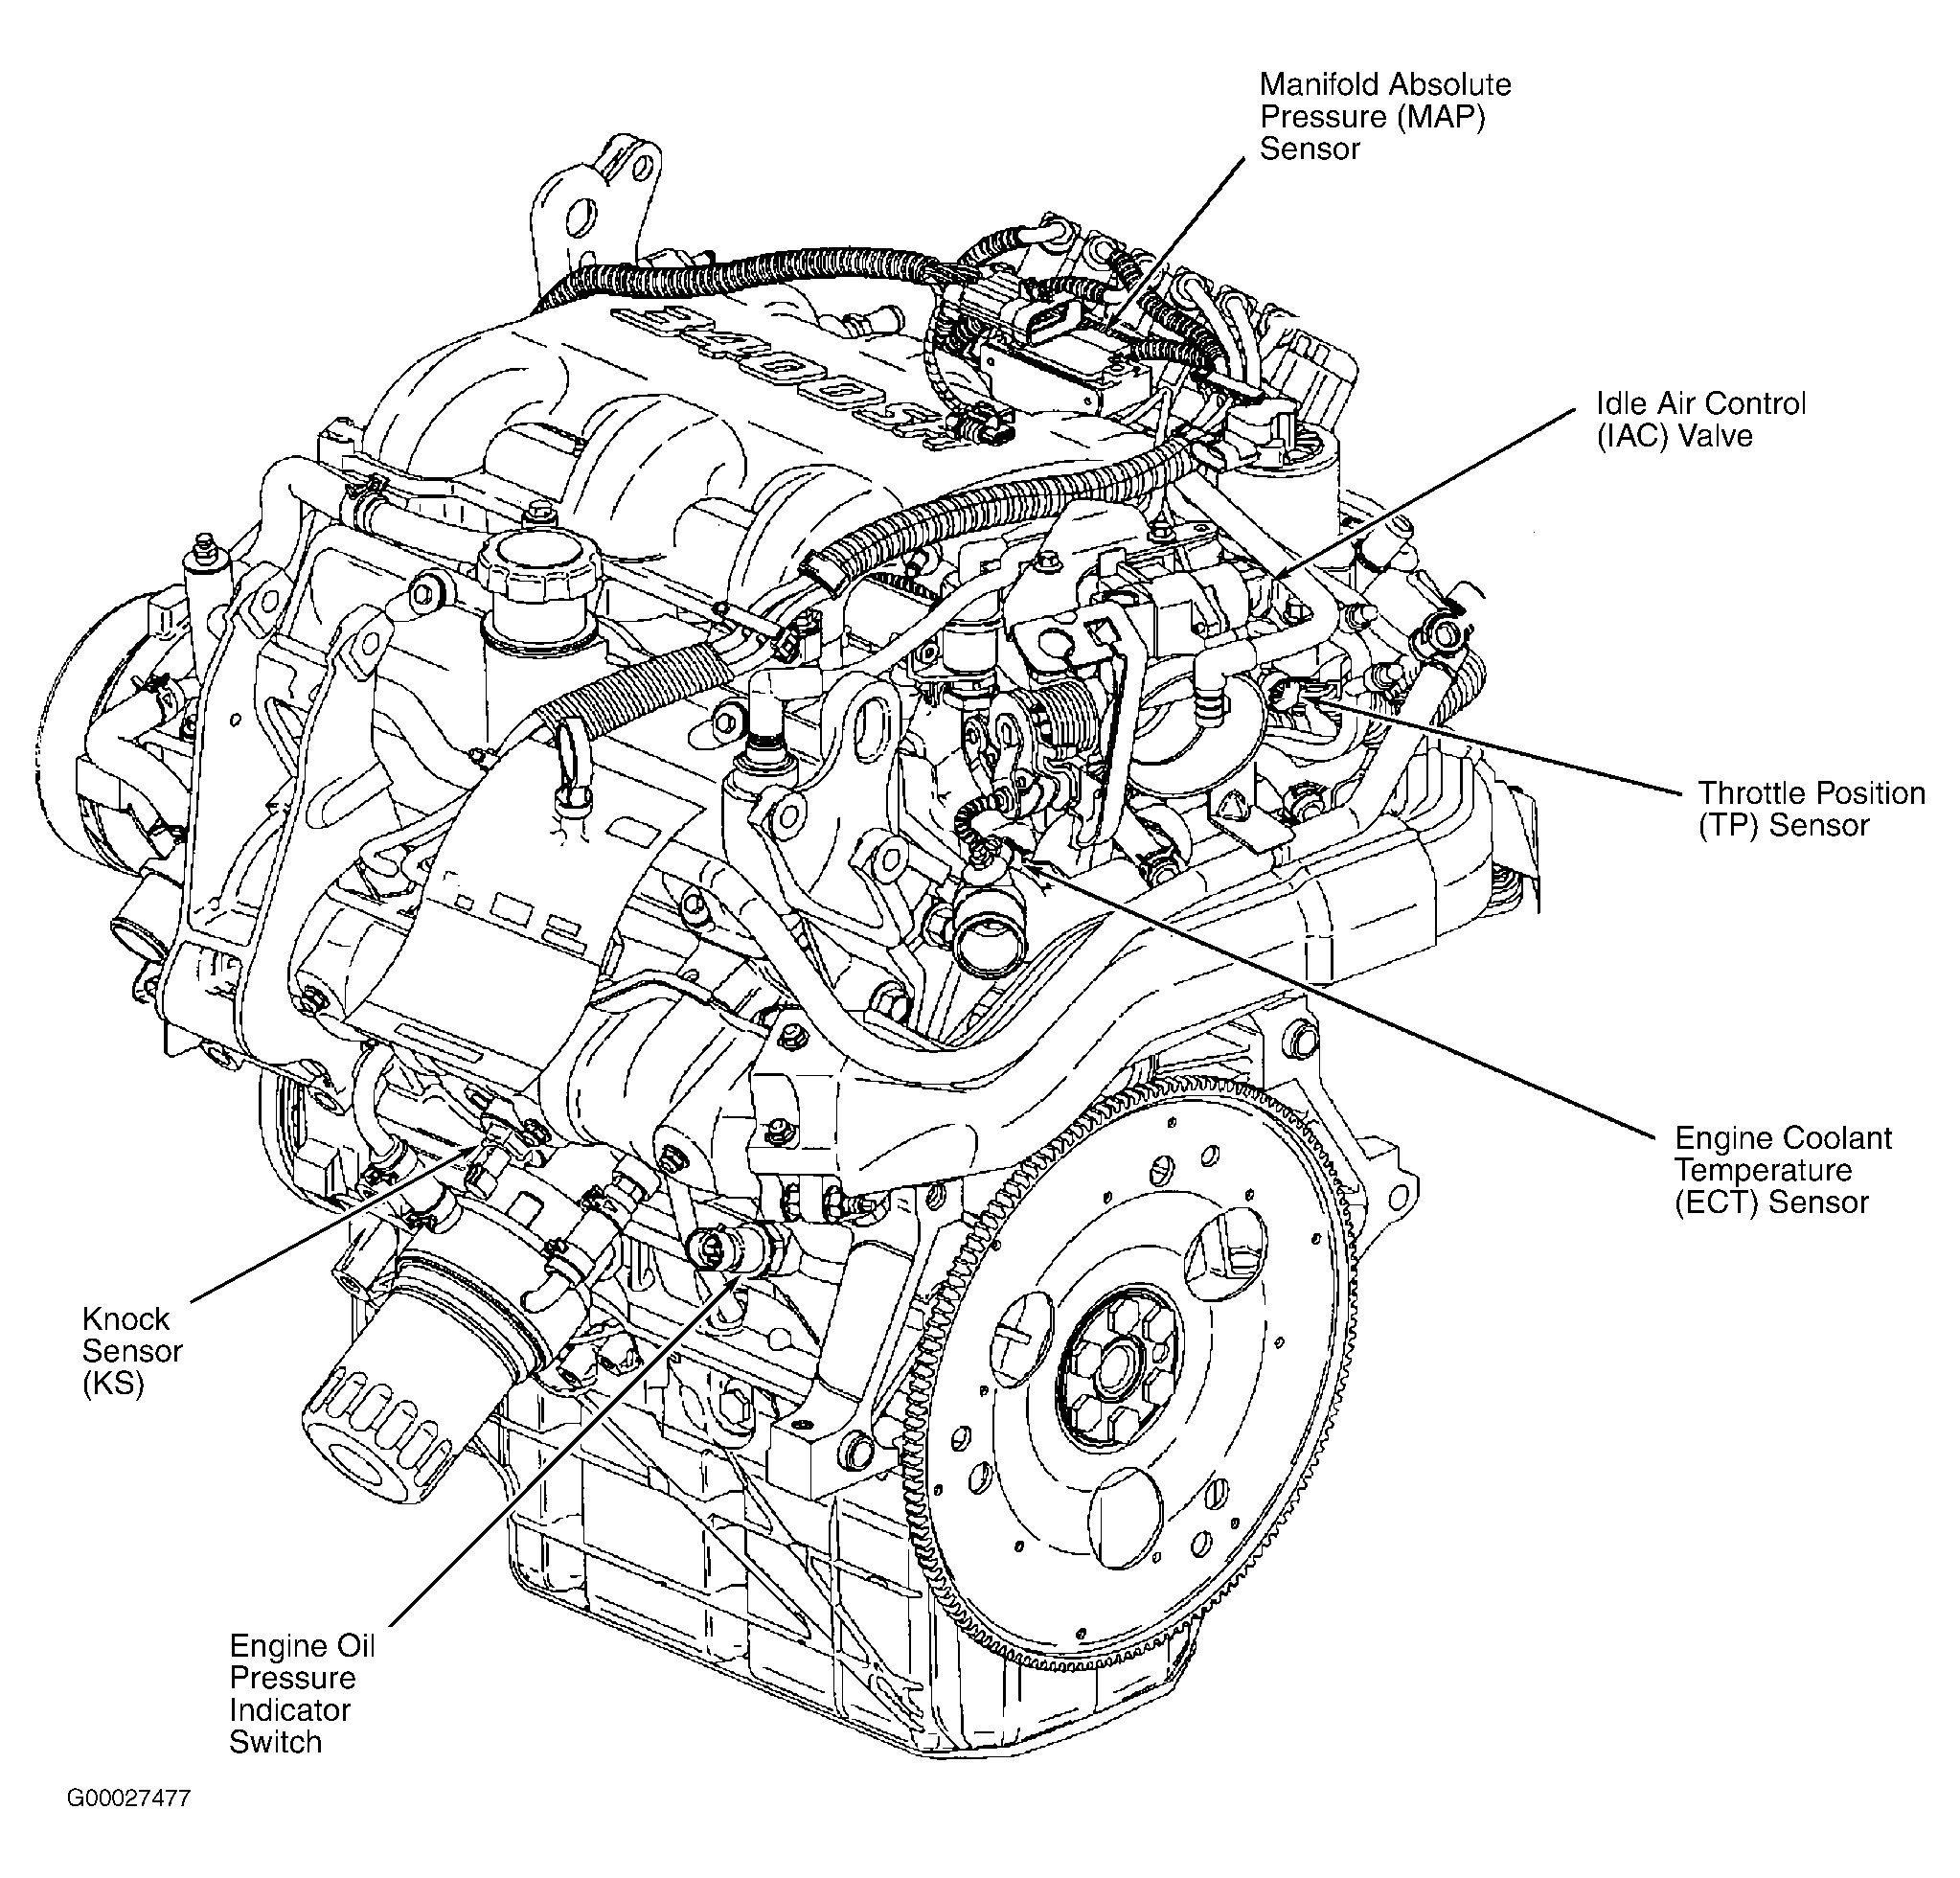 2002 Chevy Venture Heater Hose Diagram